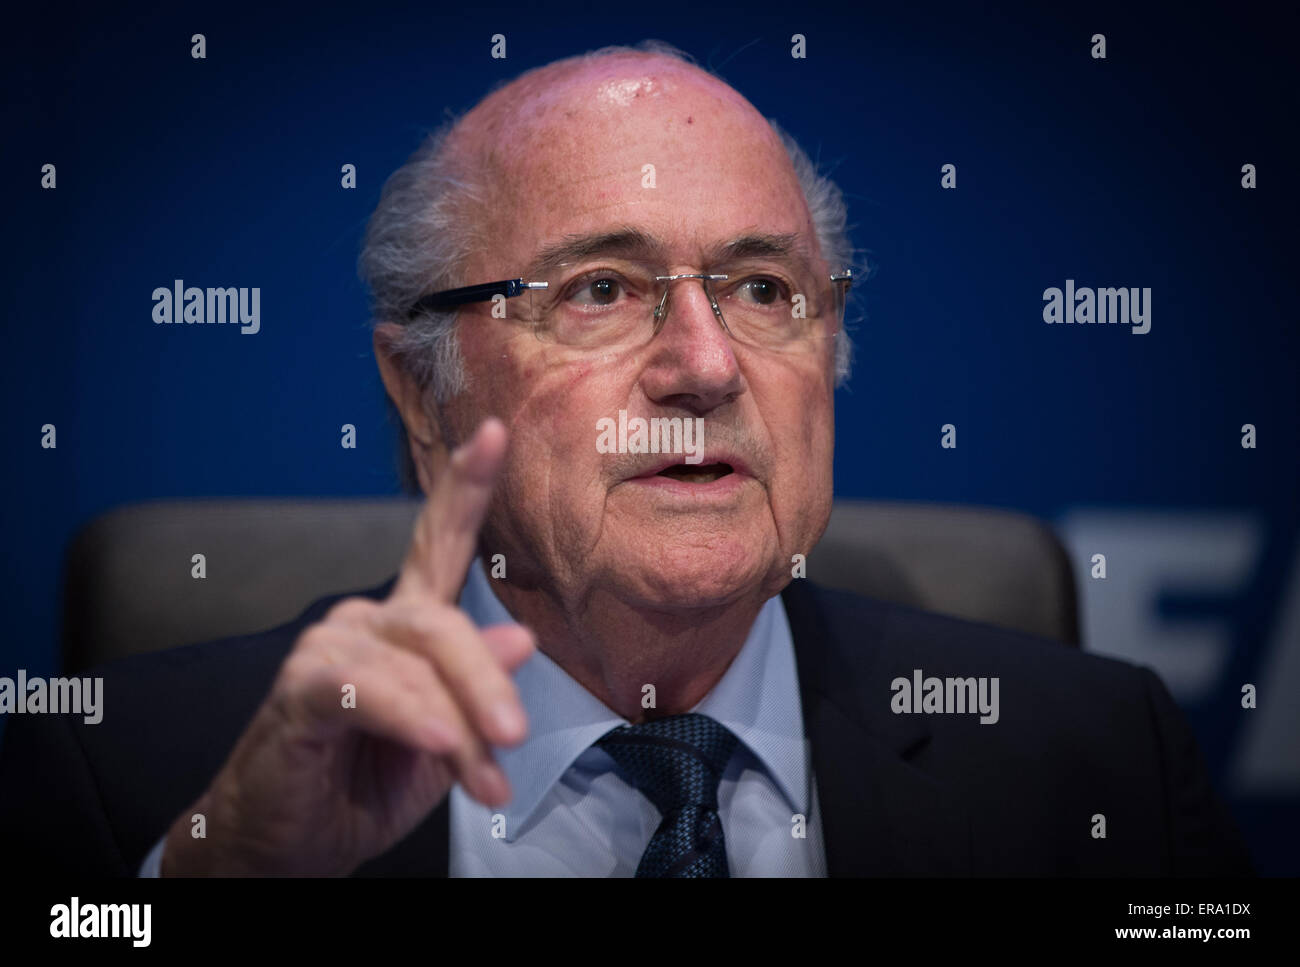 Zurich. 30th May, 2015. FIFA president Sepp Blatter attends a press conference in Zurich, Switzerland, May 30, 2015, - Stock Image